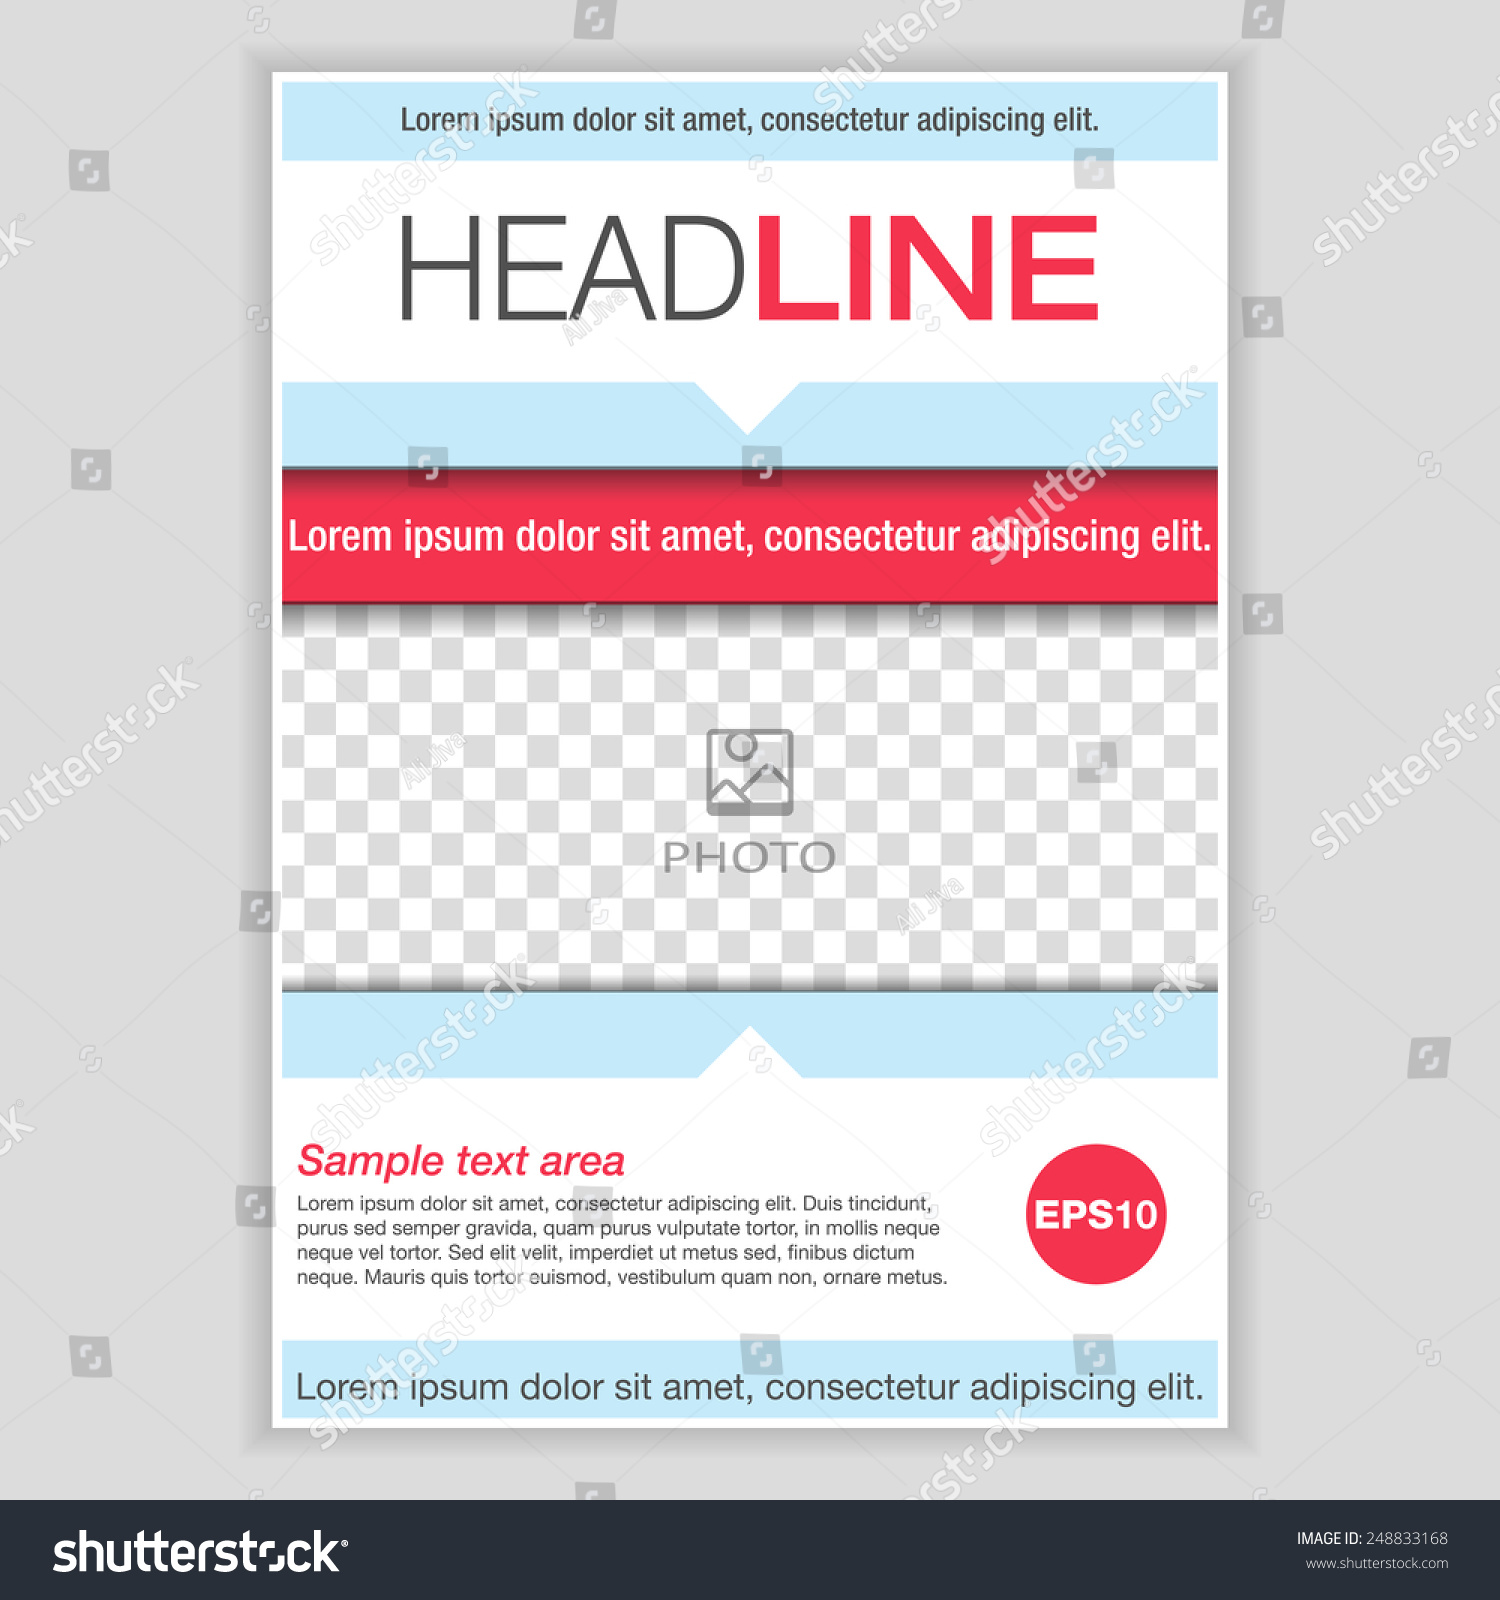 Creative Brochure Template Design. Abstract Vector Flyer, Pamphlet, Leaflet  Layout For Marketing,  Pamphlet Layout Template